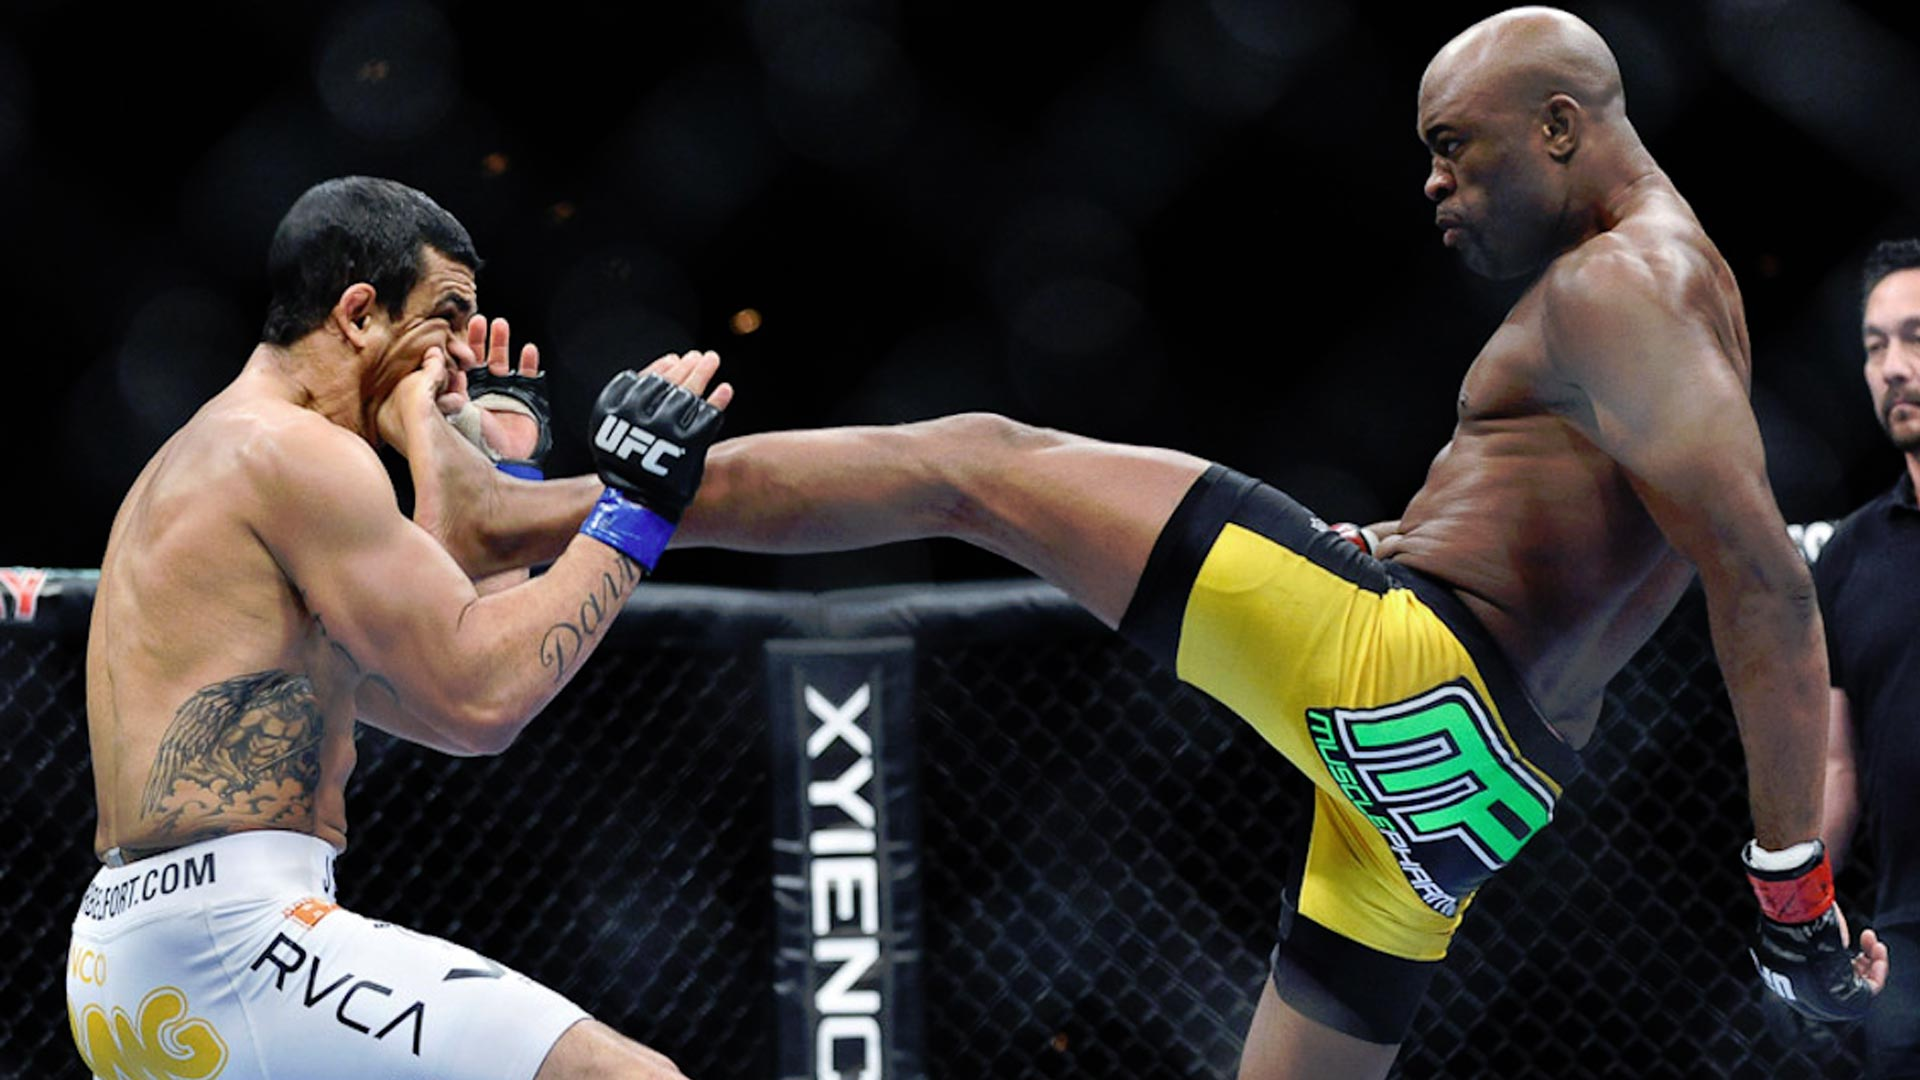 On This Day Six Years Ago: Anderson Silva Scores Front-Kick KO - SPORTbible